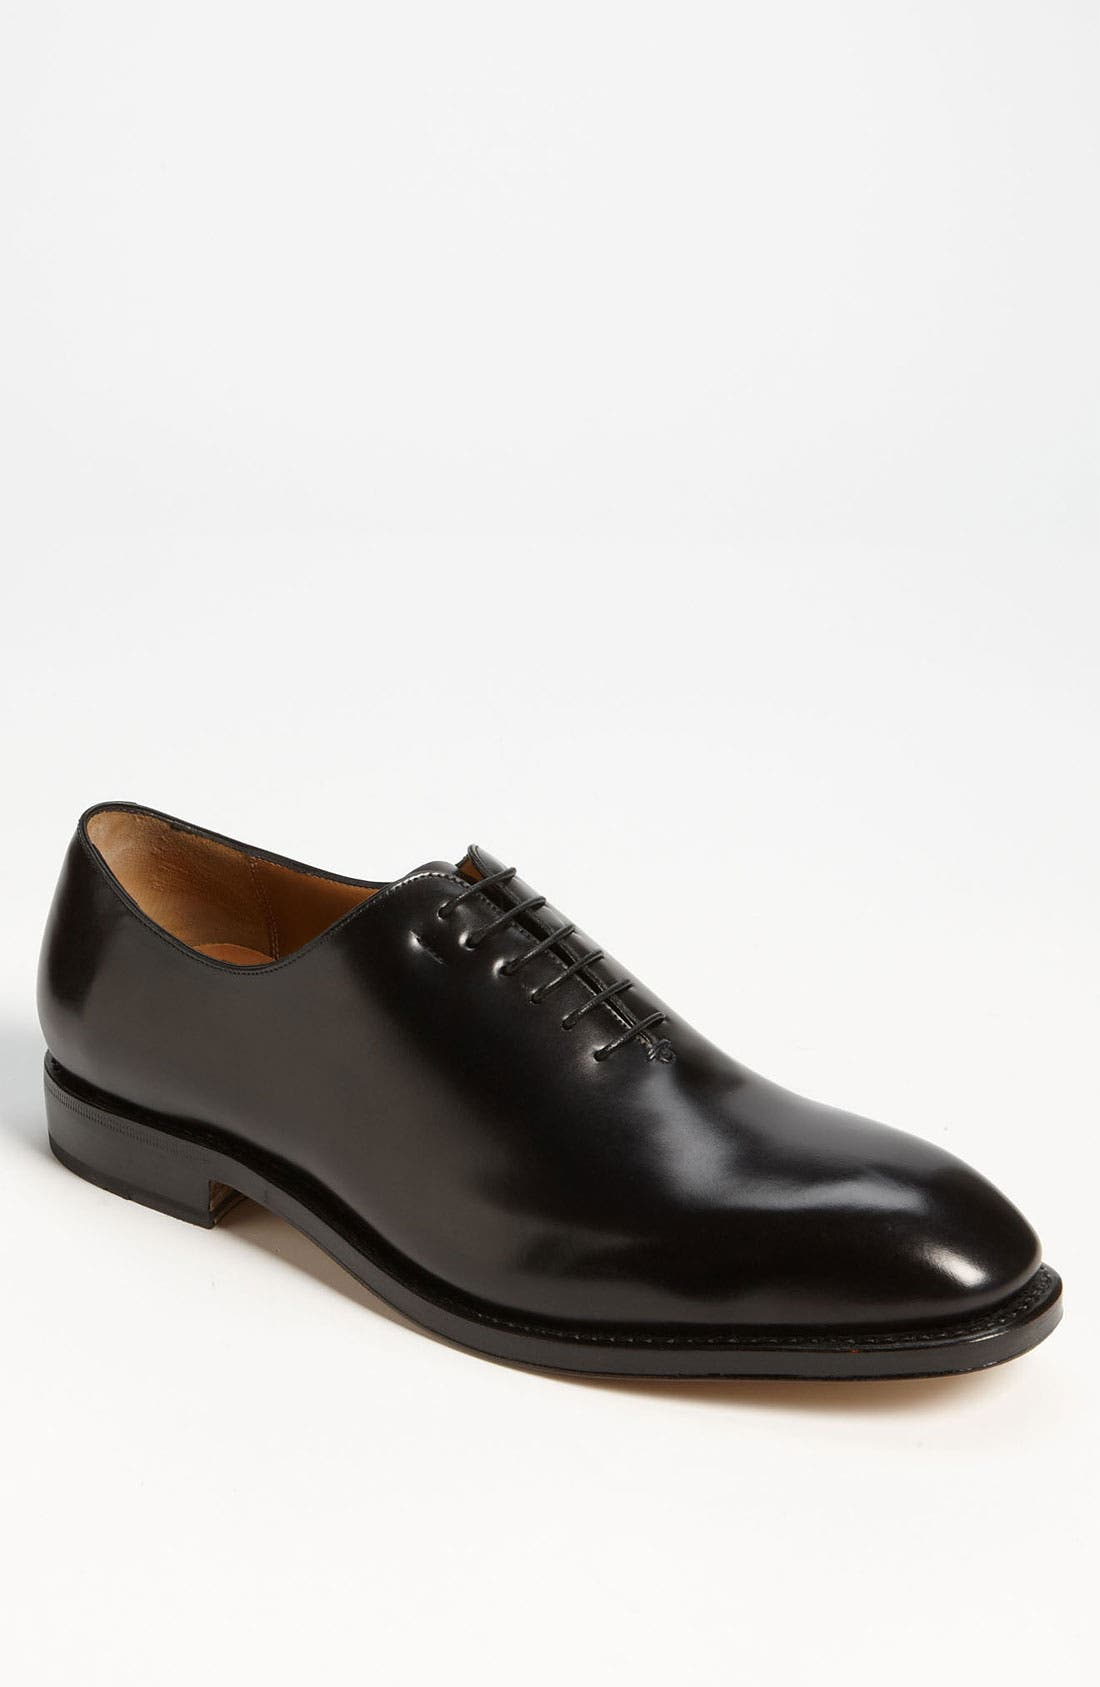 Main Image - Salvatore Ferragamo 'Carmelo' Plain Toe Oxford